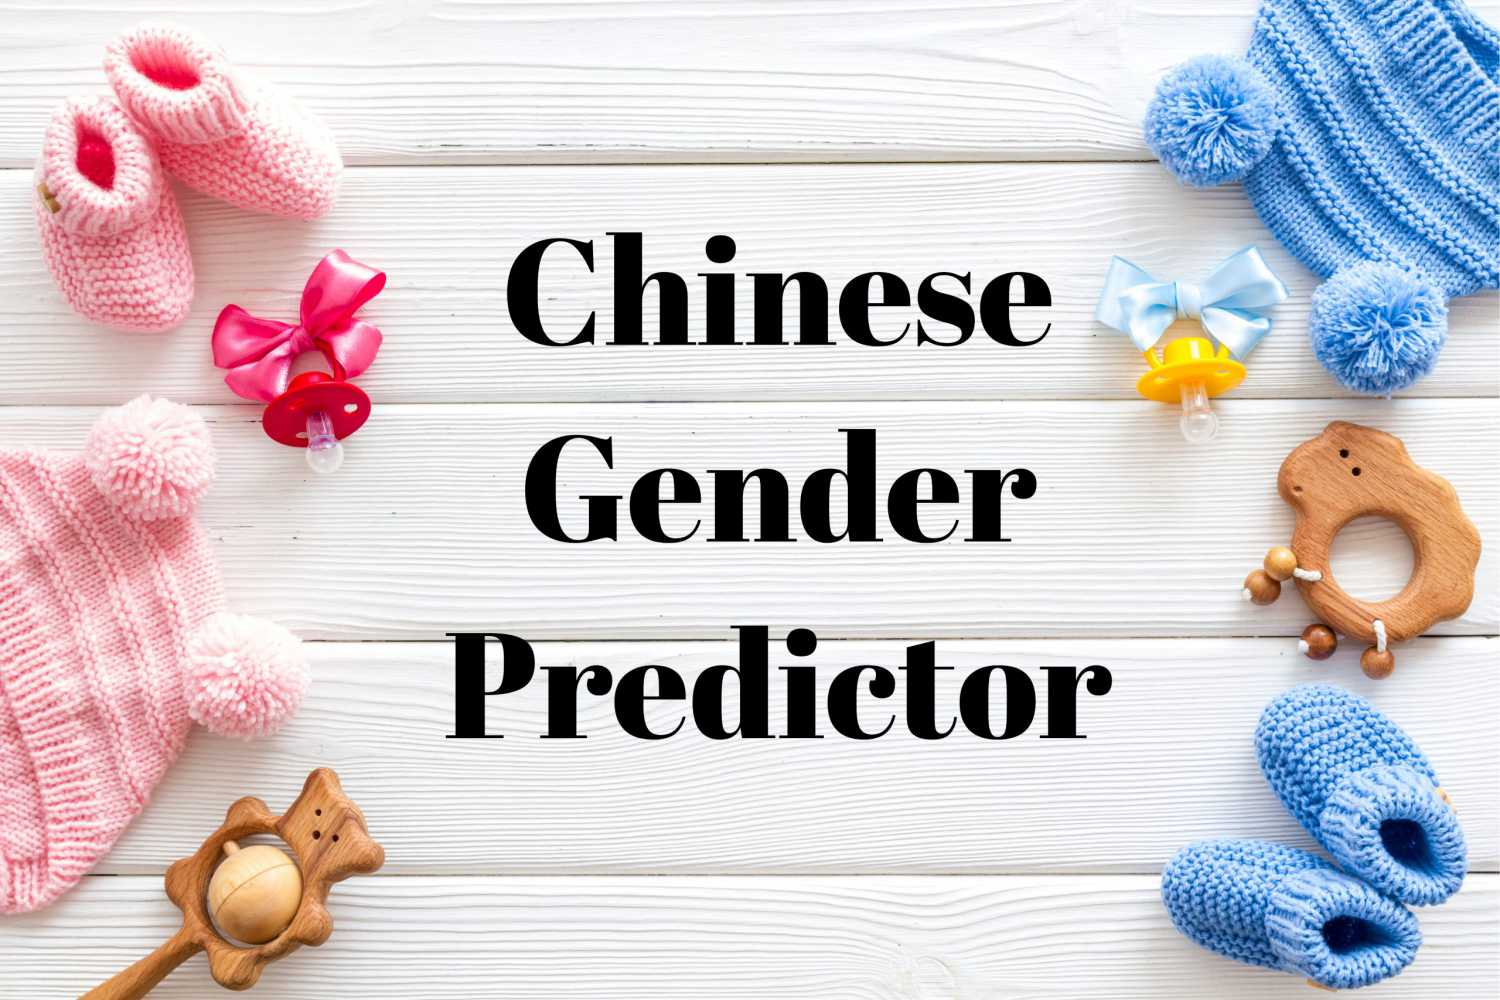 Chinese Gender Predictor : Guess the Gender of your Baby